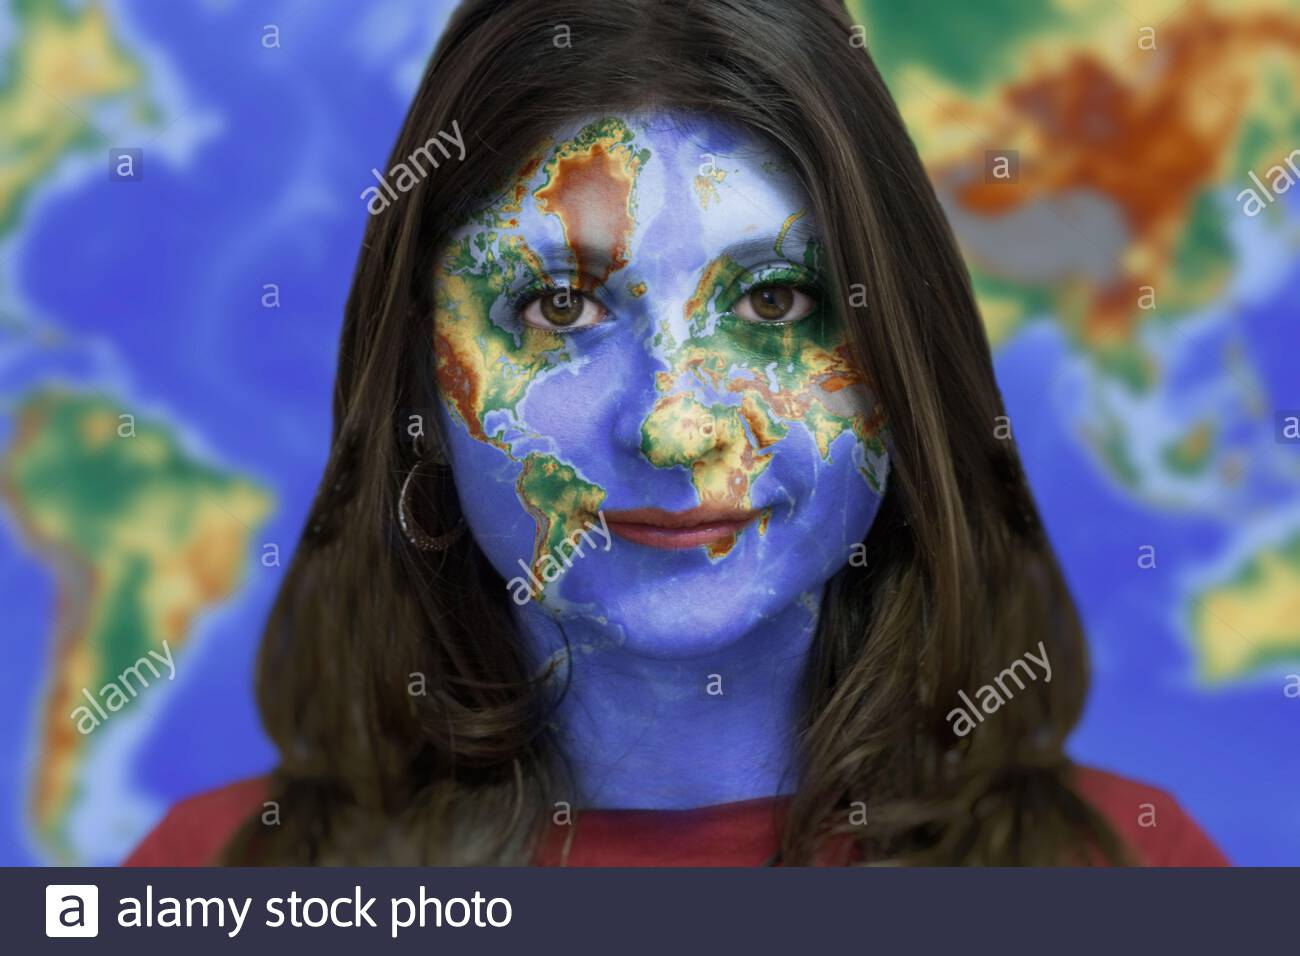 Girl With World Map On Her Face With World Map In The Background